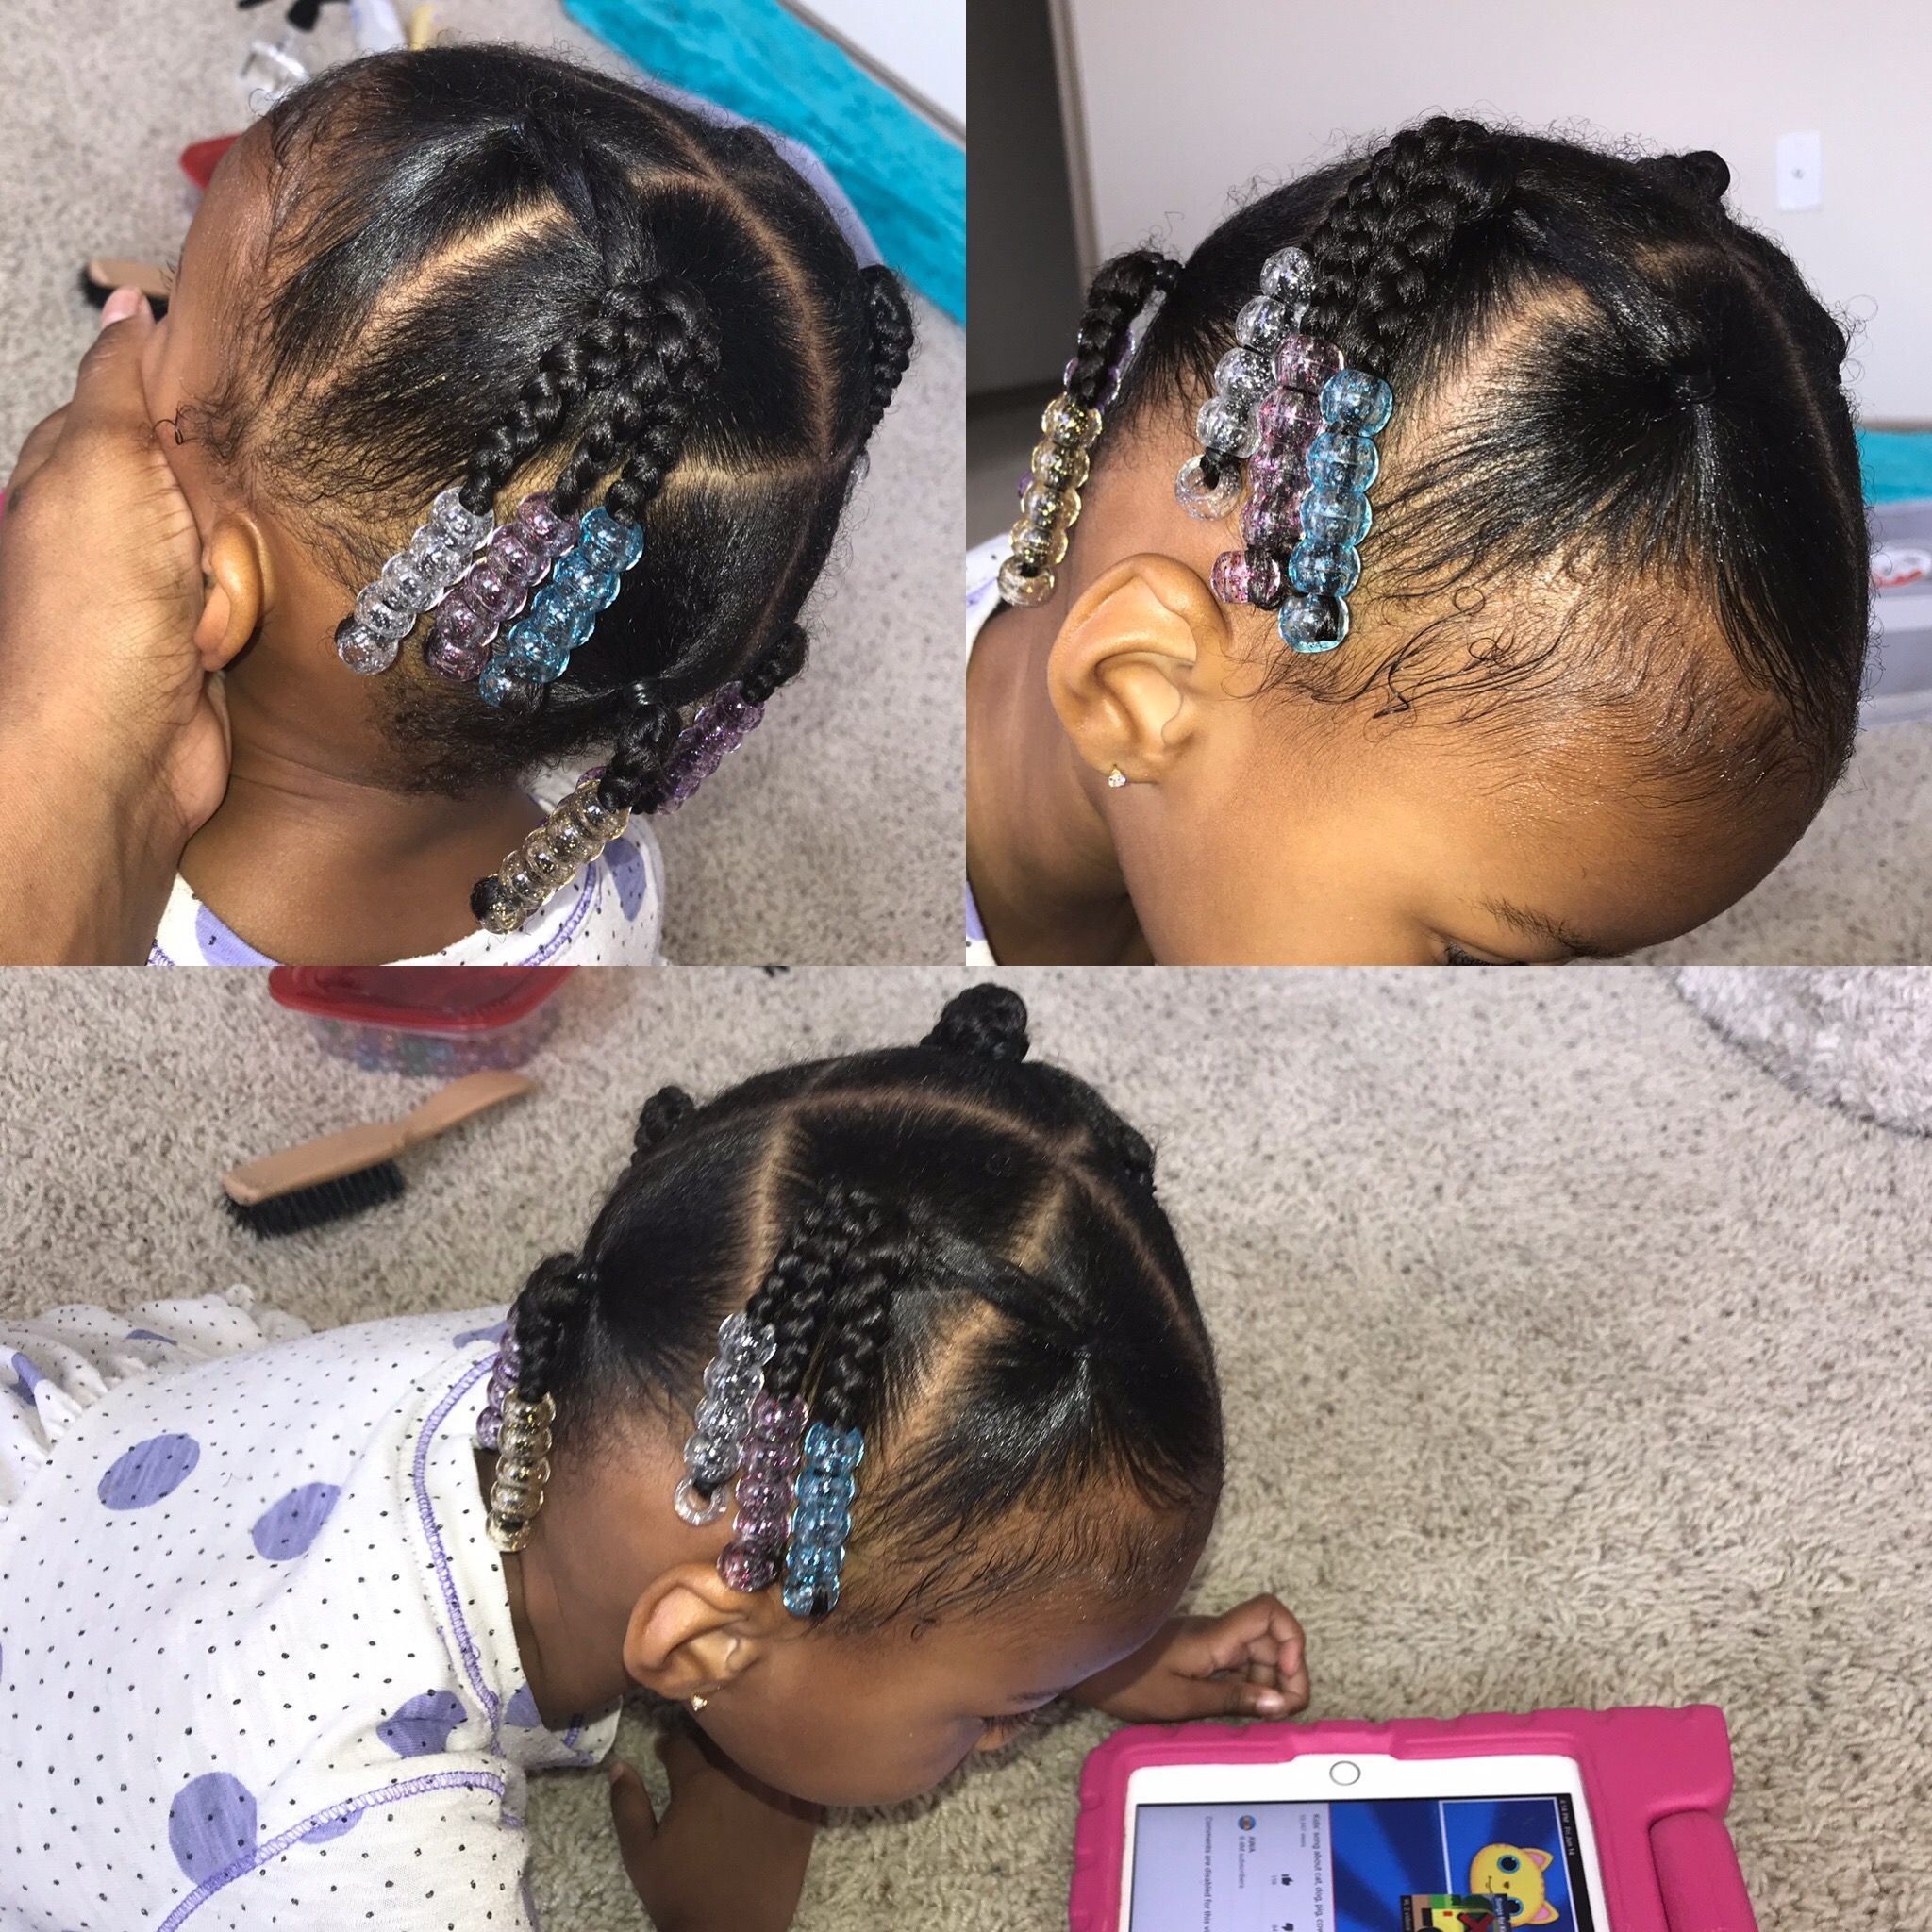 Easy 10 Minute Elastic Hairstyle Cute Hairstyles For Toddlers Cute Toddler Hairstyles Baby Girl Hairstyles Hot Hair Styles